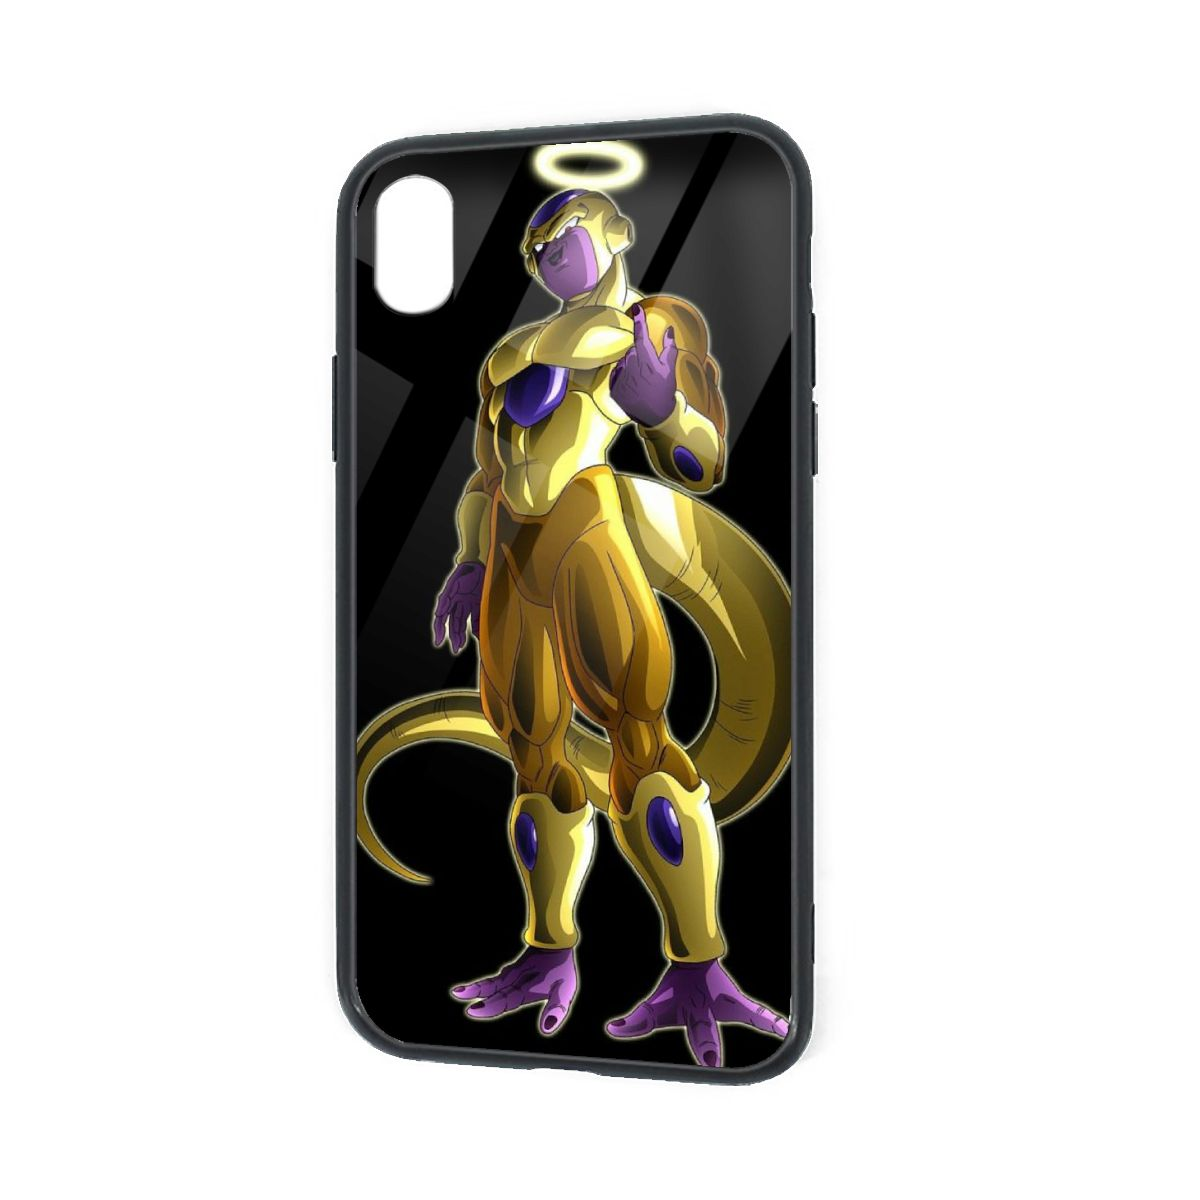 IPhone X XR XS 6 7 8 Plus Hybrid Soft Grip Clear Back Panel Ultra-Thin [Slim Fit] Cover Golden Frieza